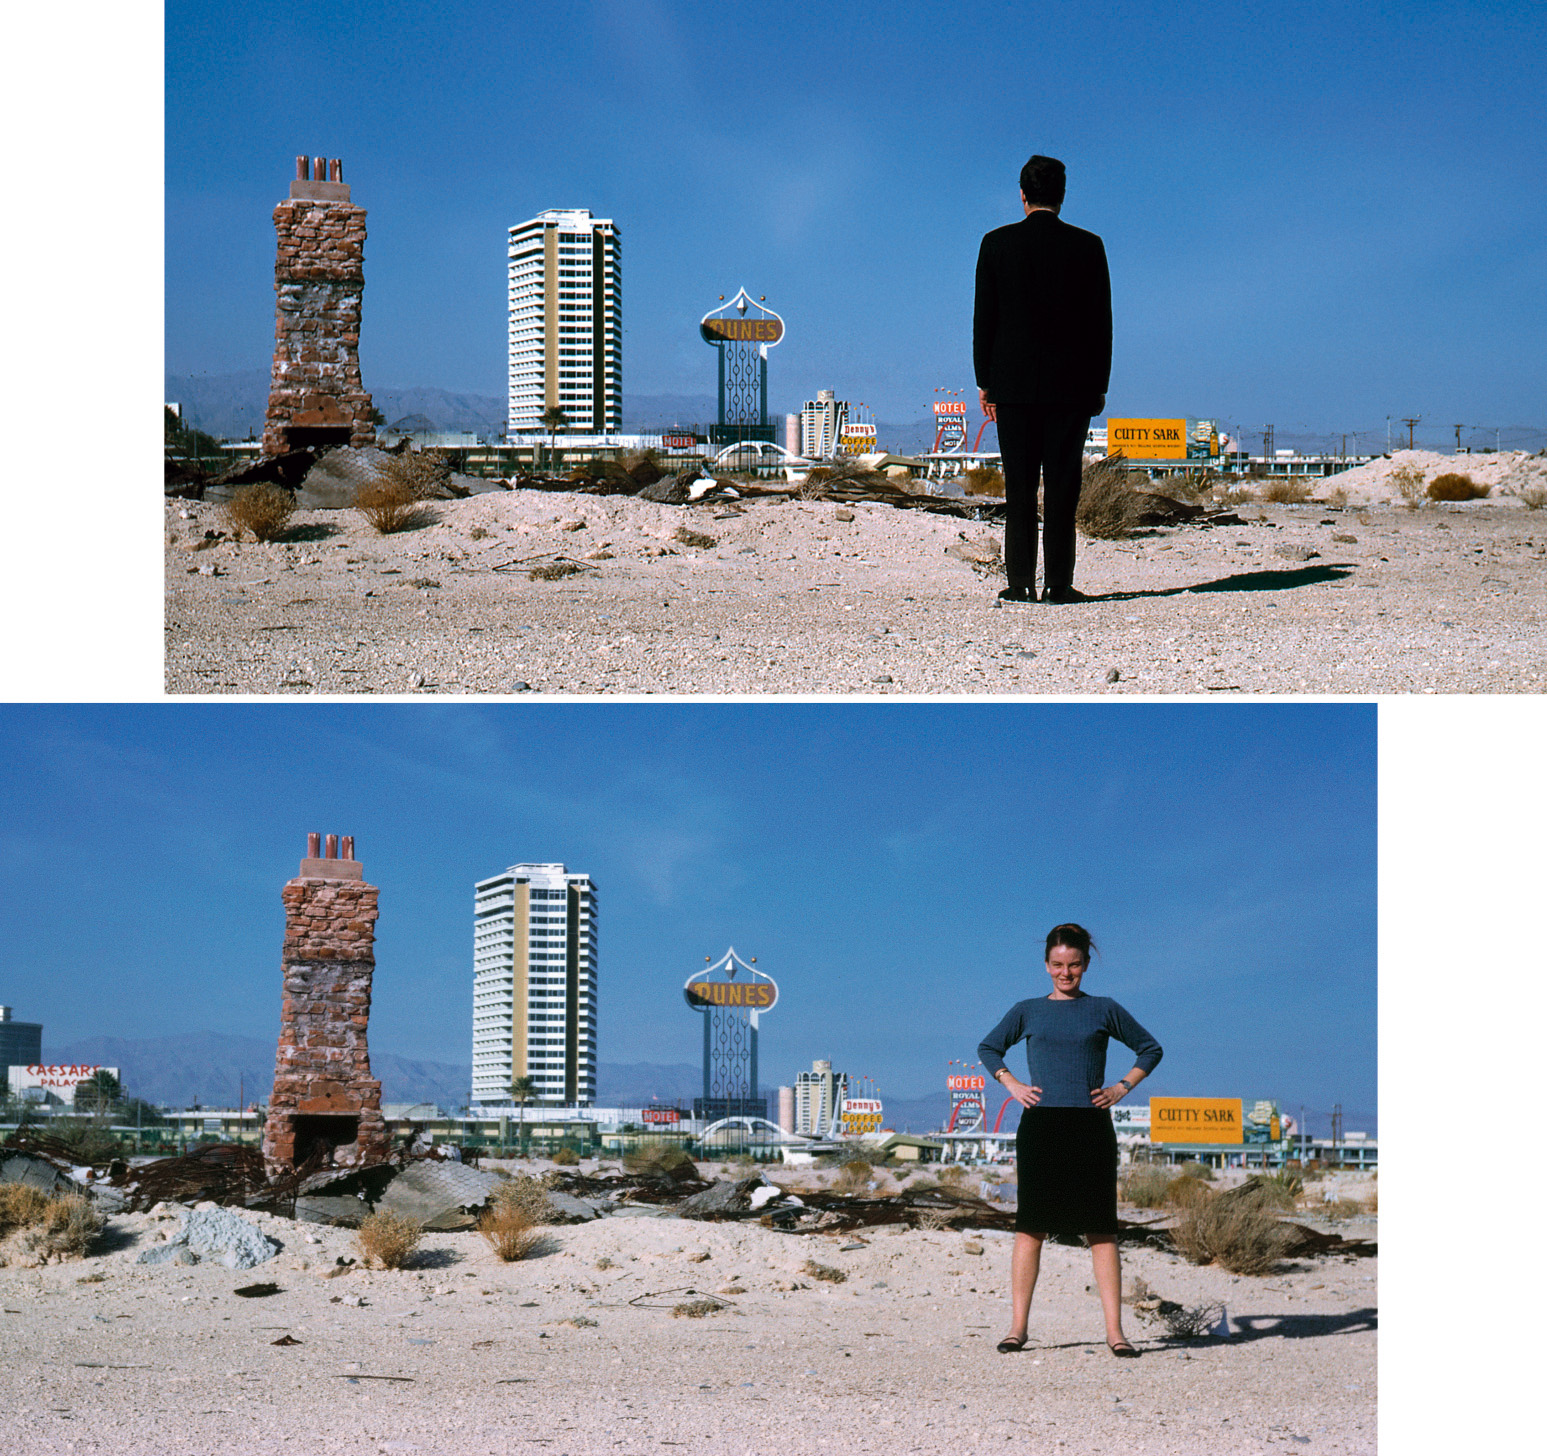 Denise Scott Brown e Robert Venturi - Denise Scott Brown e Robert Venturi nel deserto di Las Vegas - 1966 - courtesy studio Venturi, Scott Brown and Associates, Inc., Filadelfia